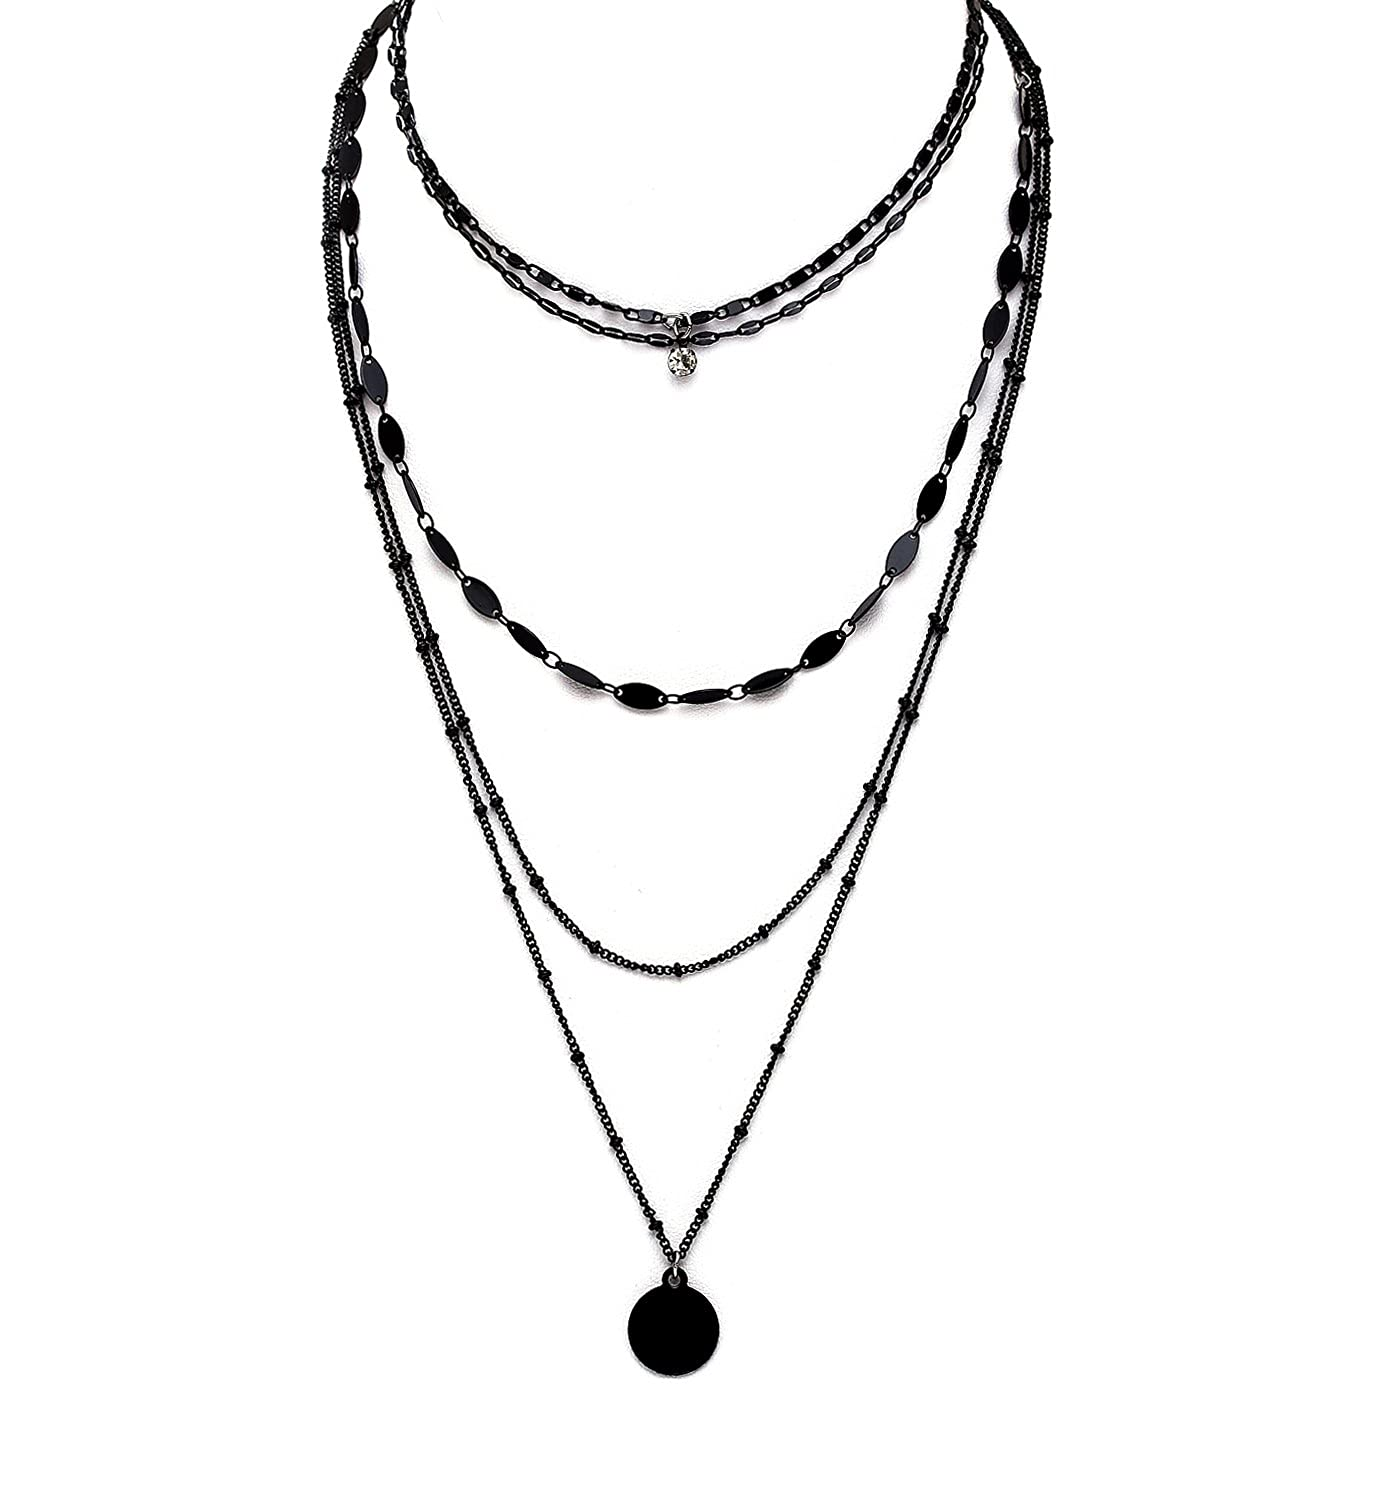 gem necklace stone products multilayer set n scarlettjewelry